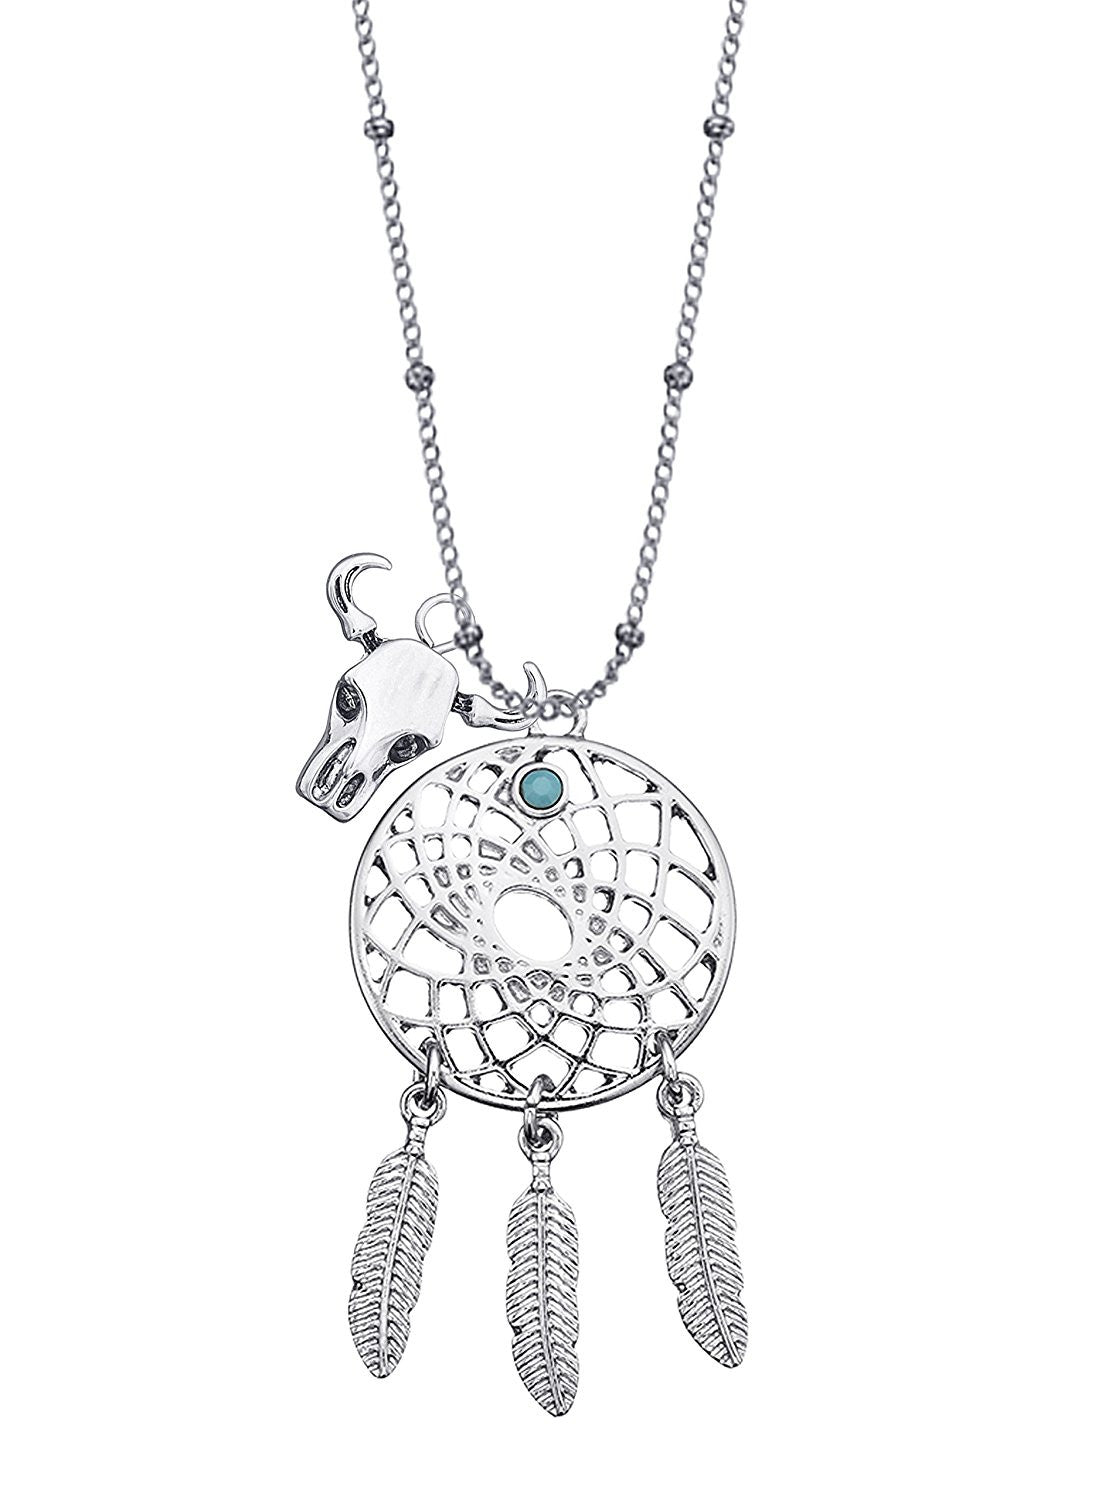 Dream Catcher Charm Necklace